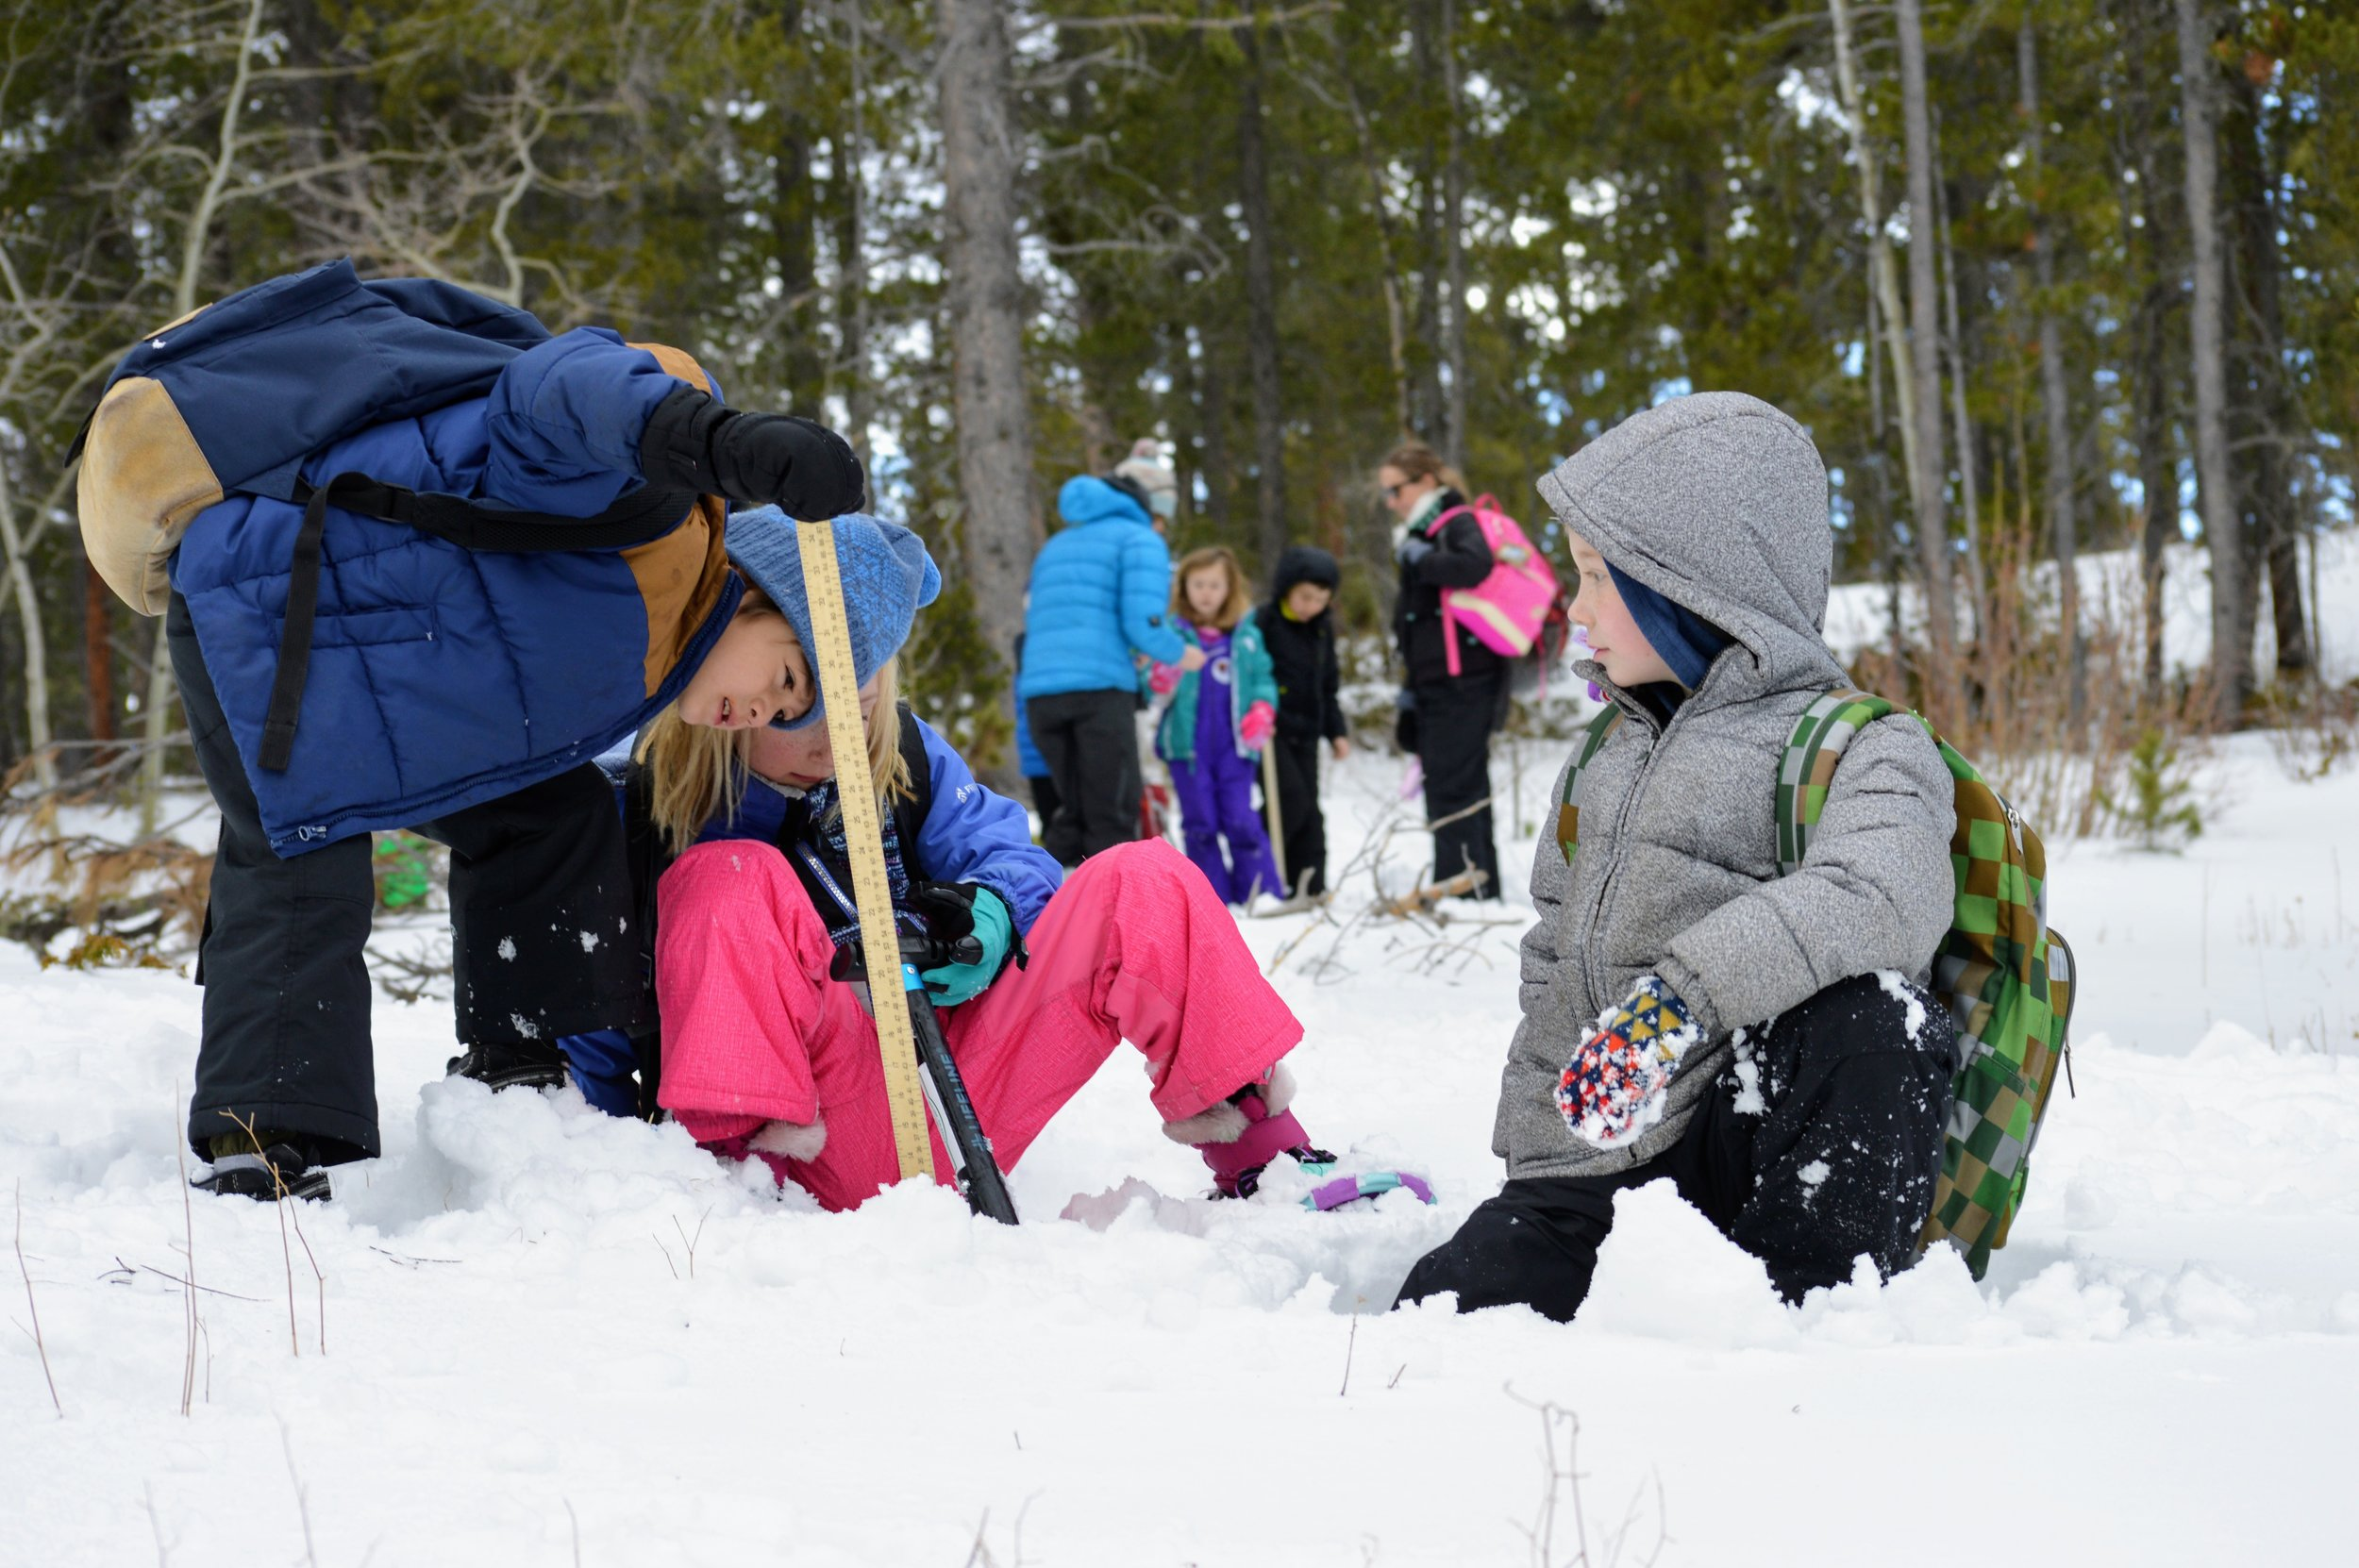 Winter Wildlands Alliance Snow School - Each winter Niwot Ridge LTER, Wild Bear Mountain Ecology Center and Winter Wildlands Alliance bring elementary school children from the Boulder-Denver Metro area to the mountains. In the 2017-18 school year, approximately 120 1st-6th grade students and their teachers spent a day on snowshoes with us learning about snow science, the importance of snow, and about some aspects of LTER science. Niwot graduate students have also helped design teaching activities for the national Snow School network, such as the Snowpack Dust Experiment, which are now being taught across the country.